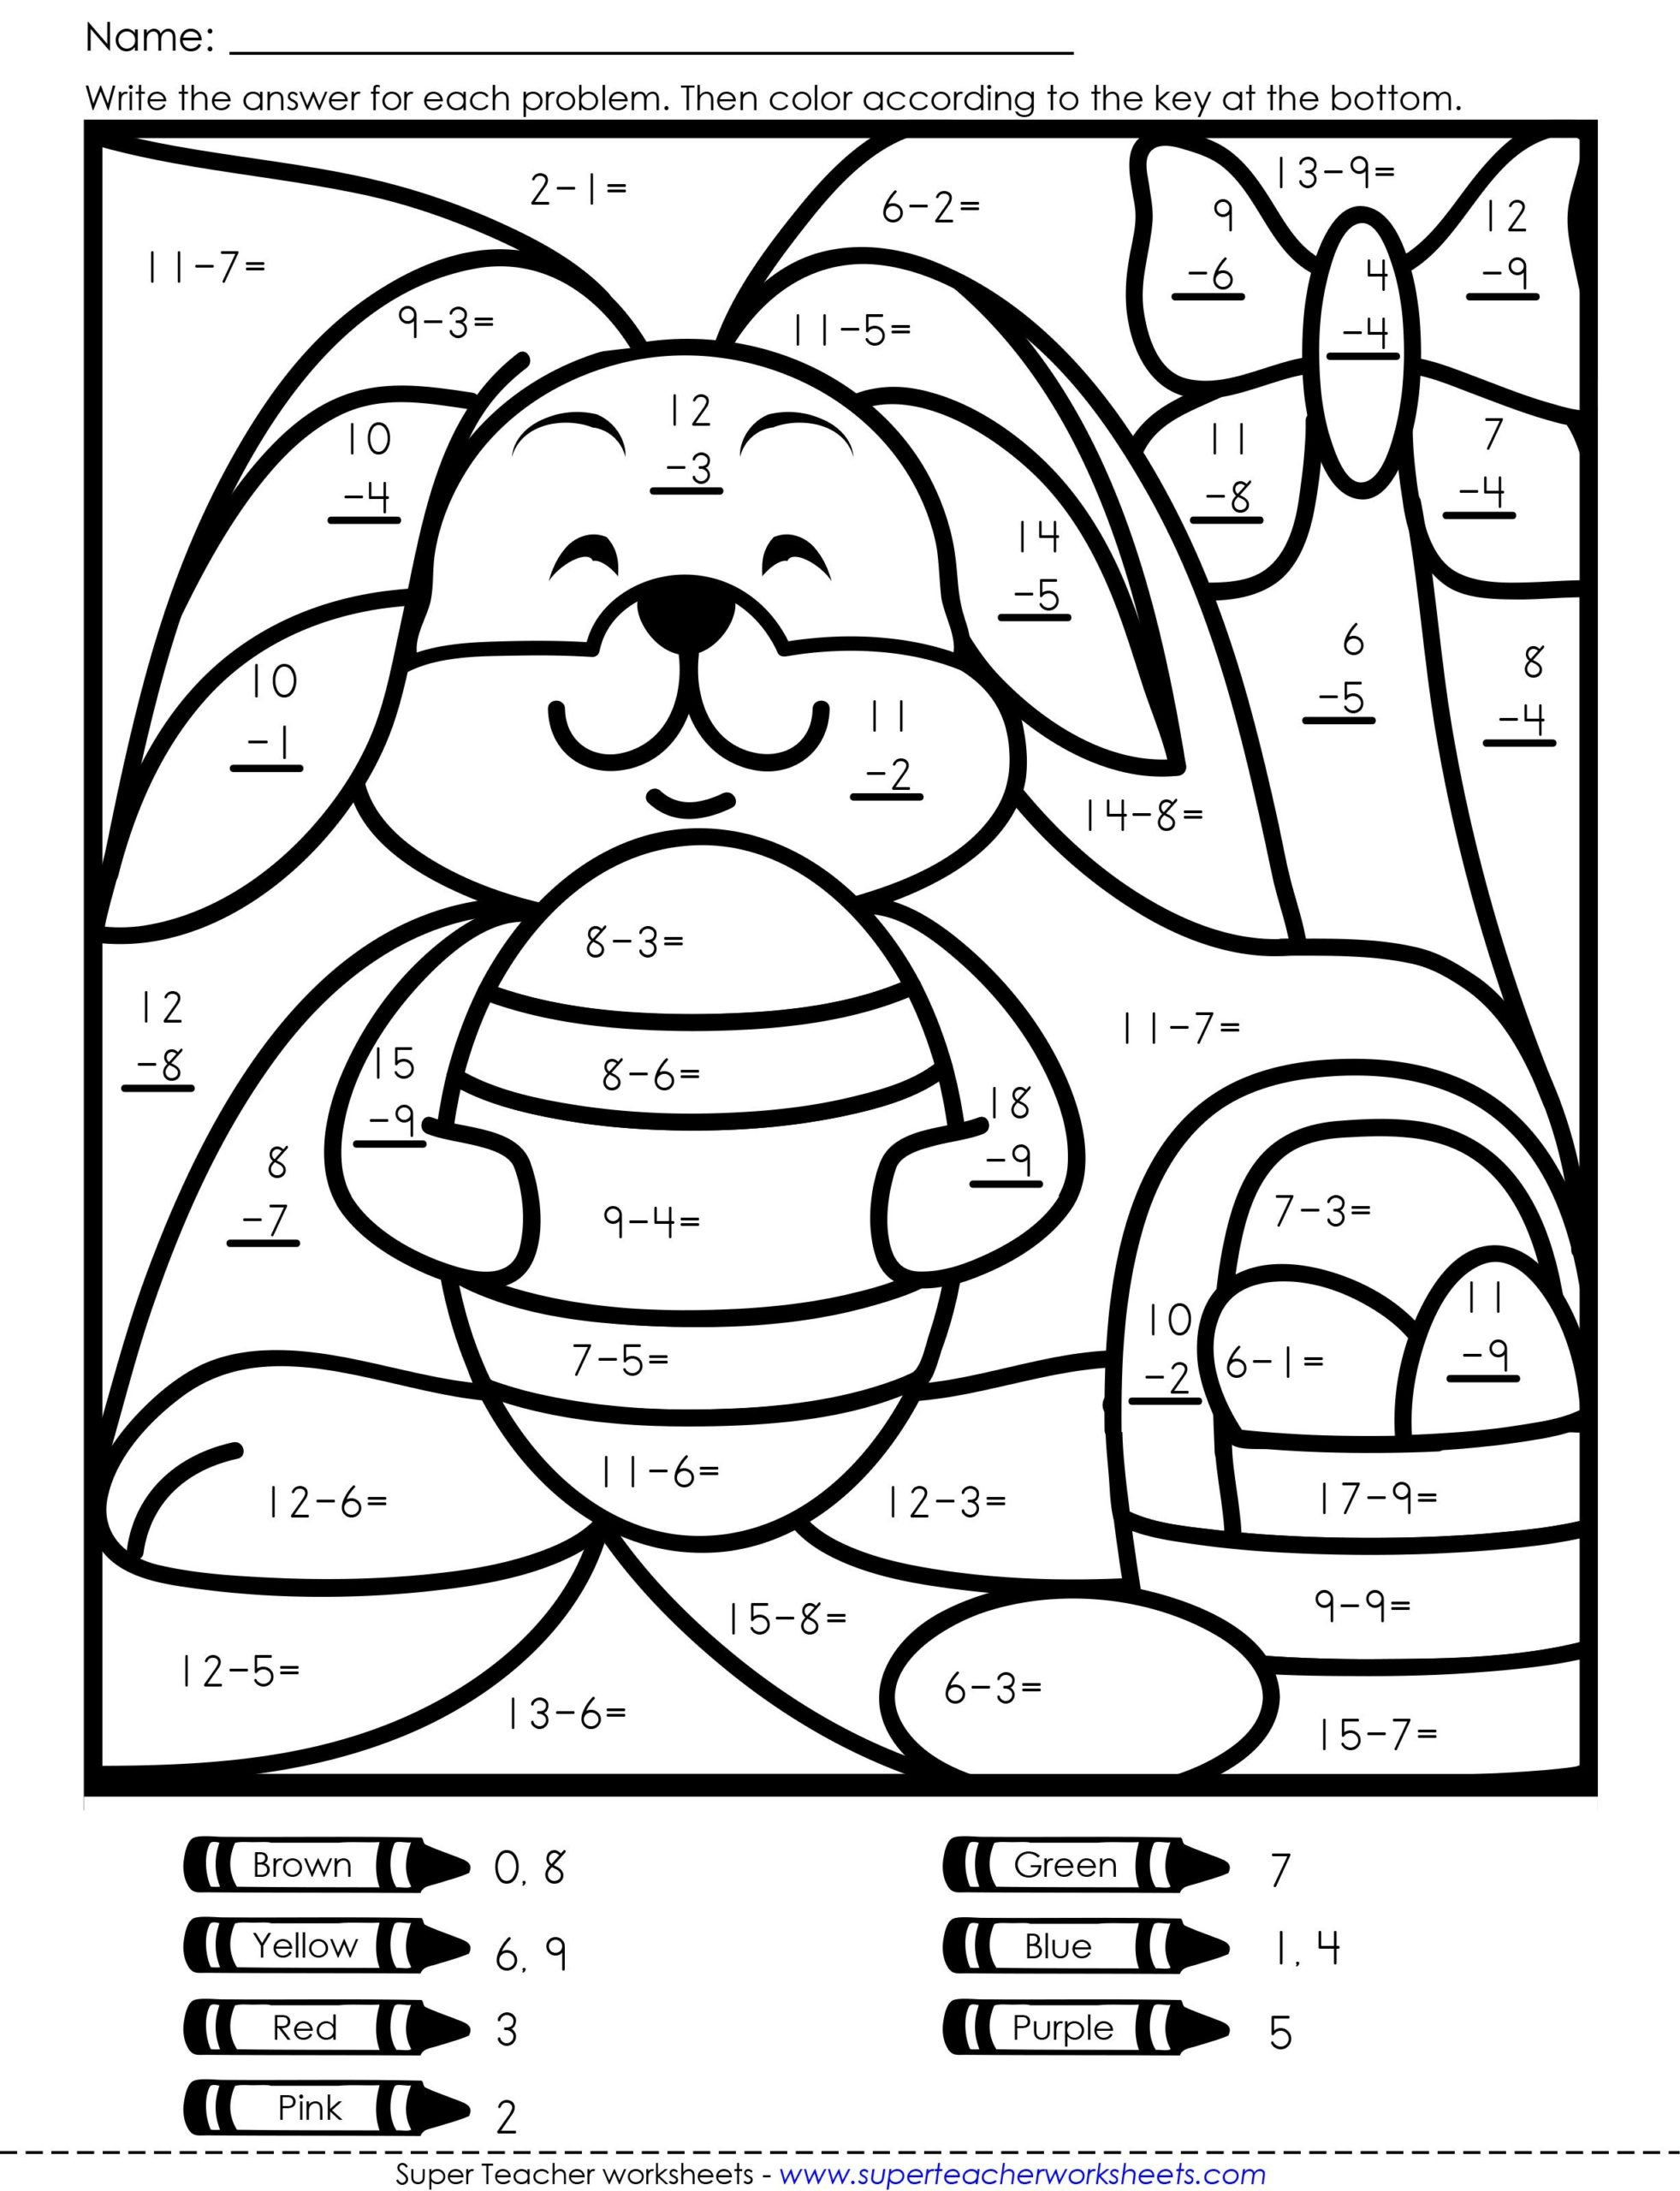 Division Coloring Worksheets Freeth Coloring Worksheets Fun 4th Grade 2nd 5th Division